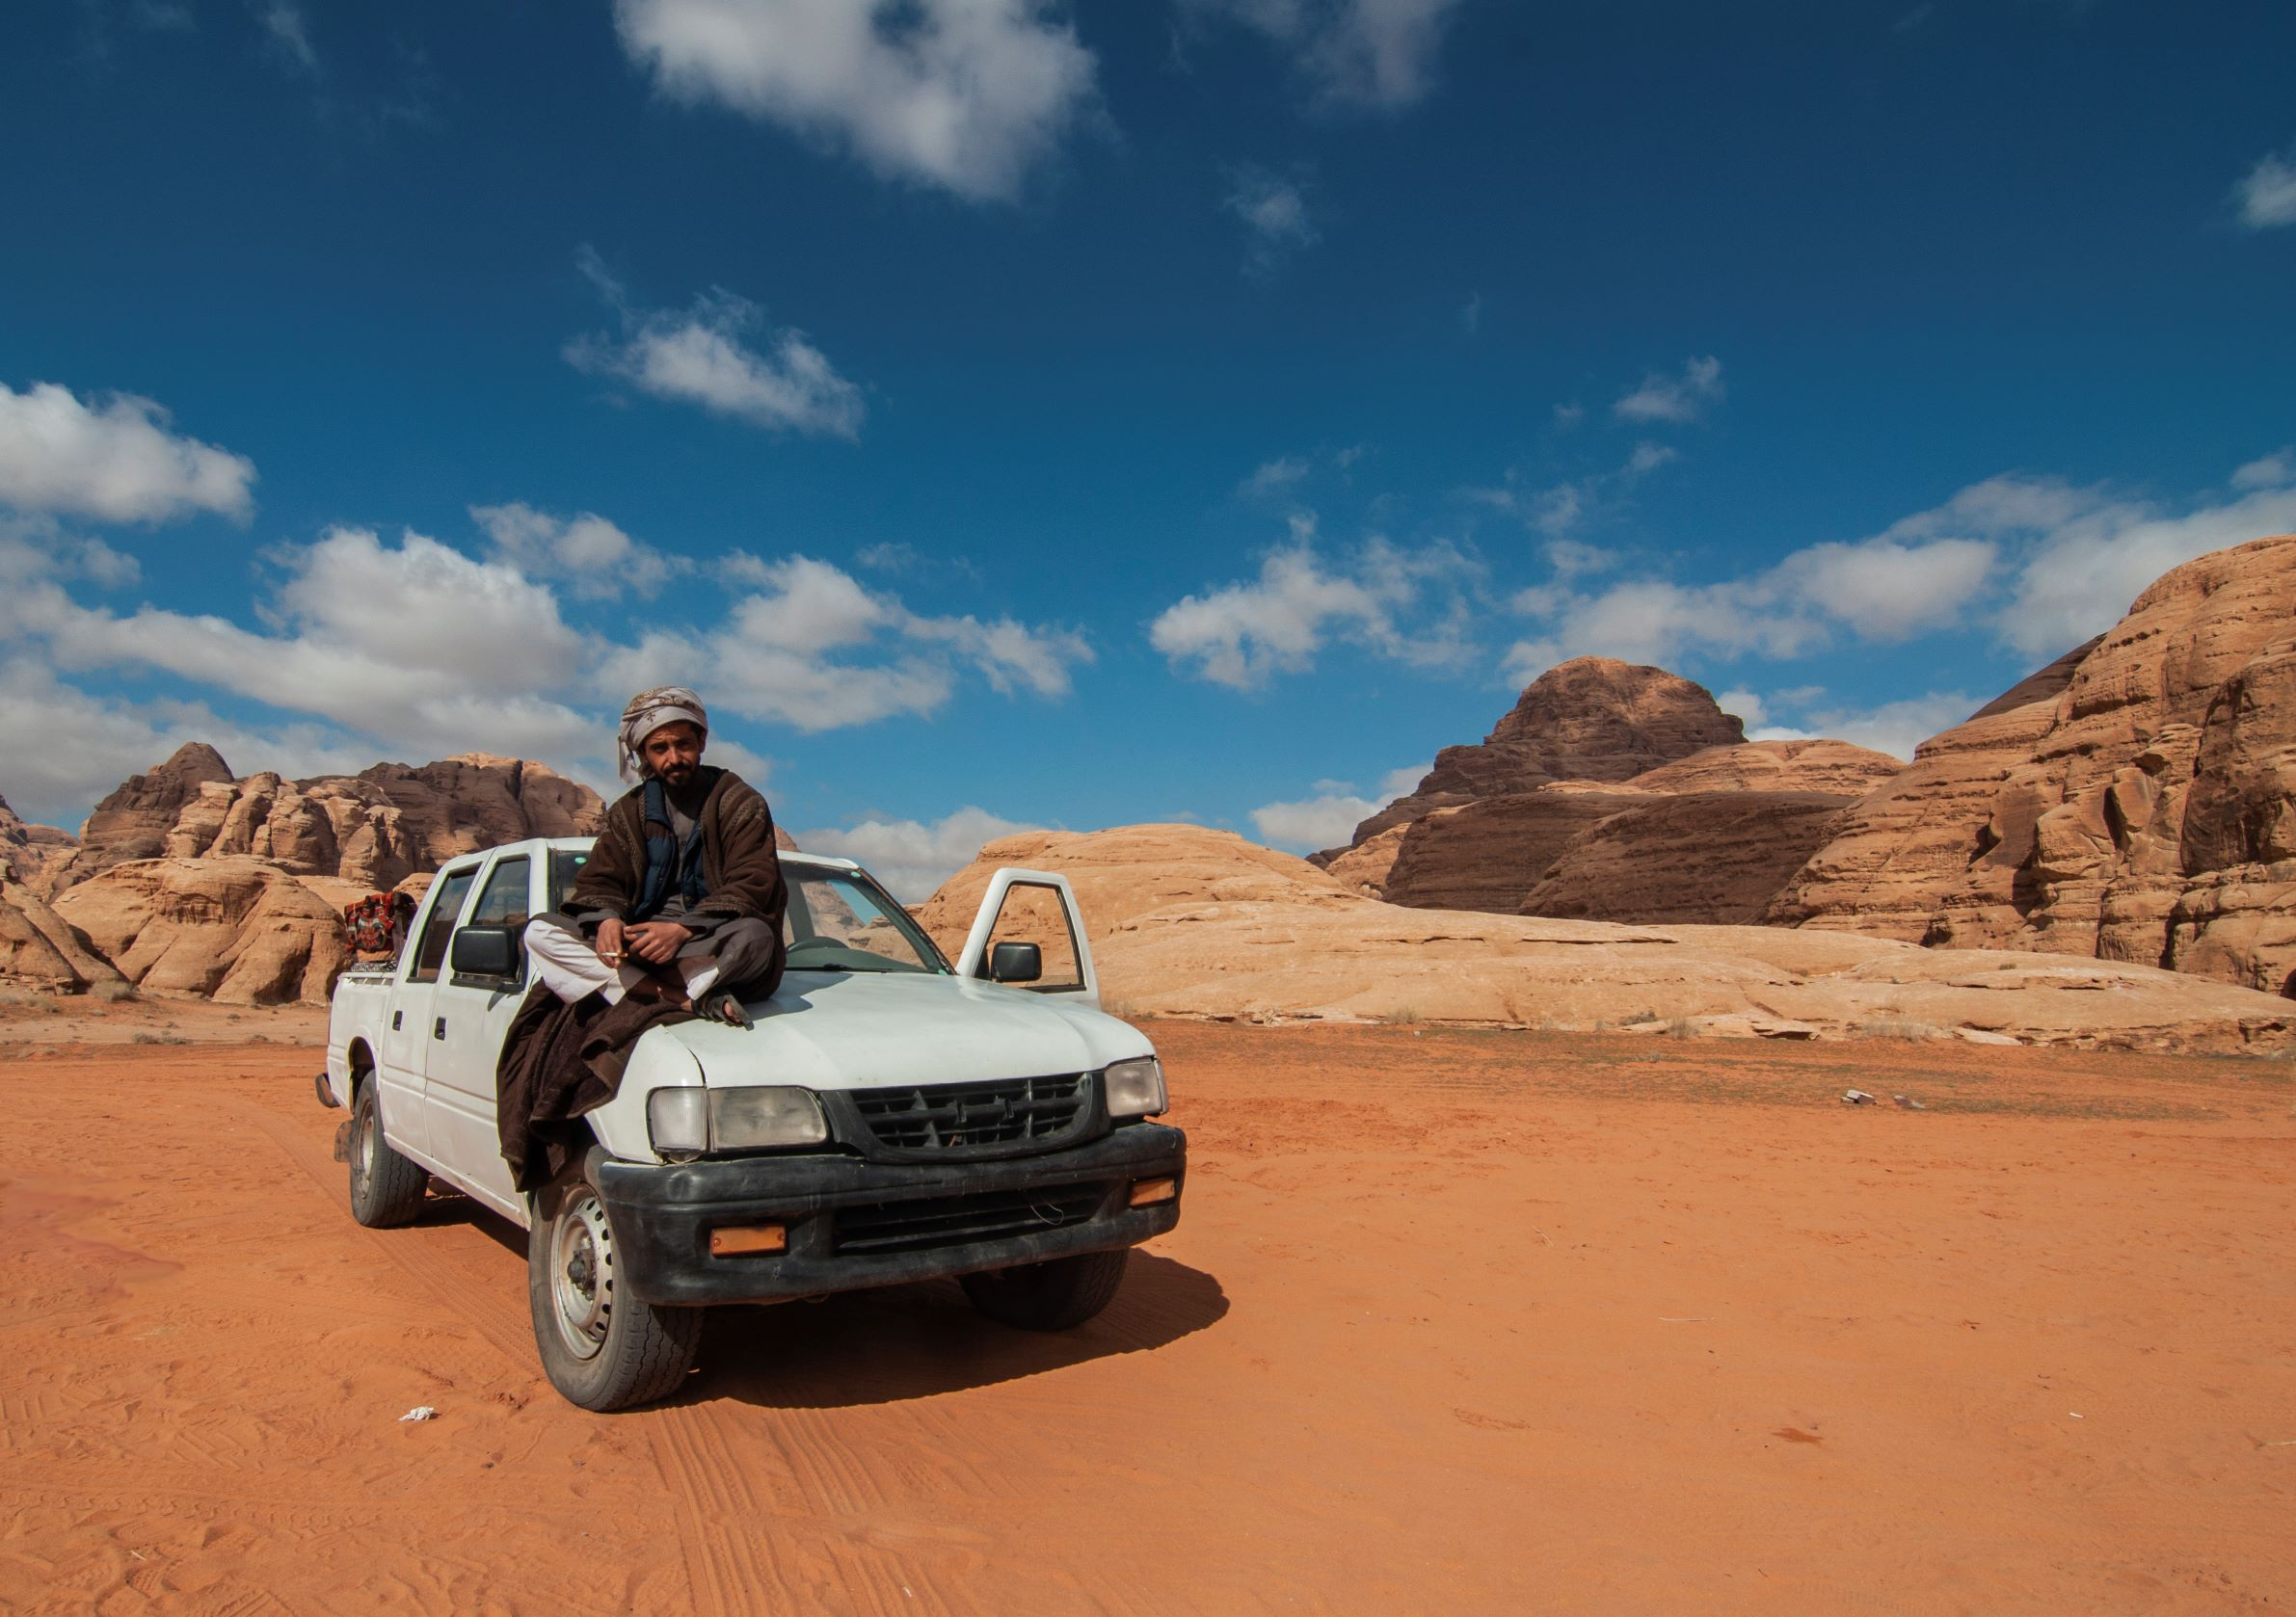 Our Bedouin guide, Wadi Rum desert.